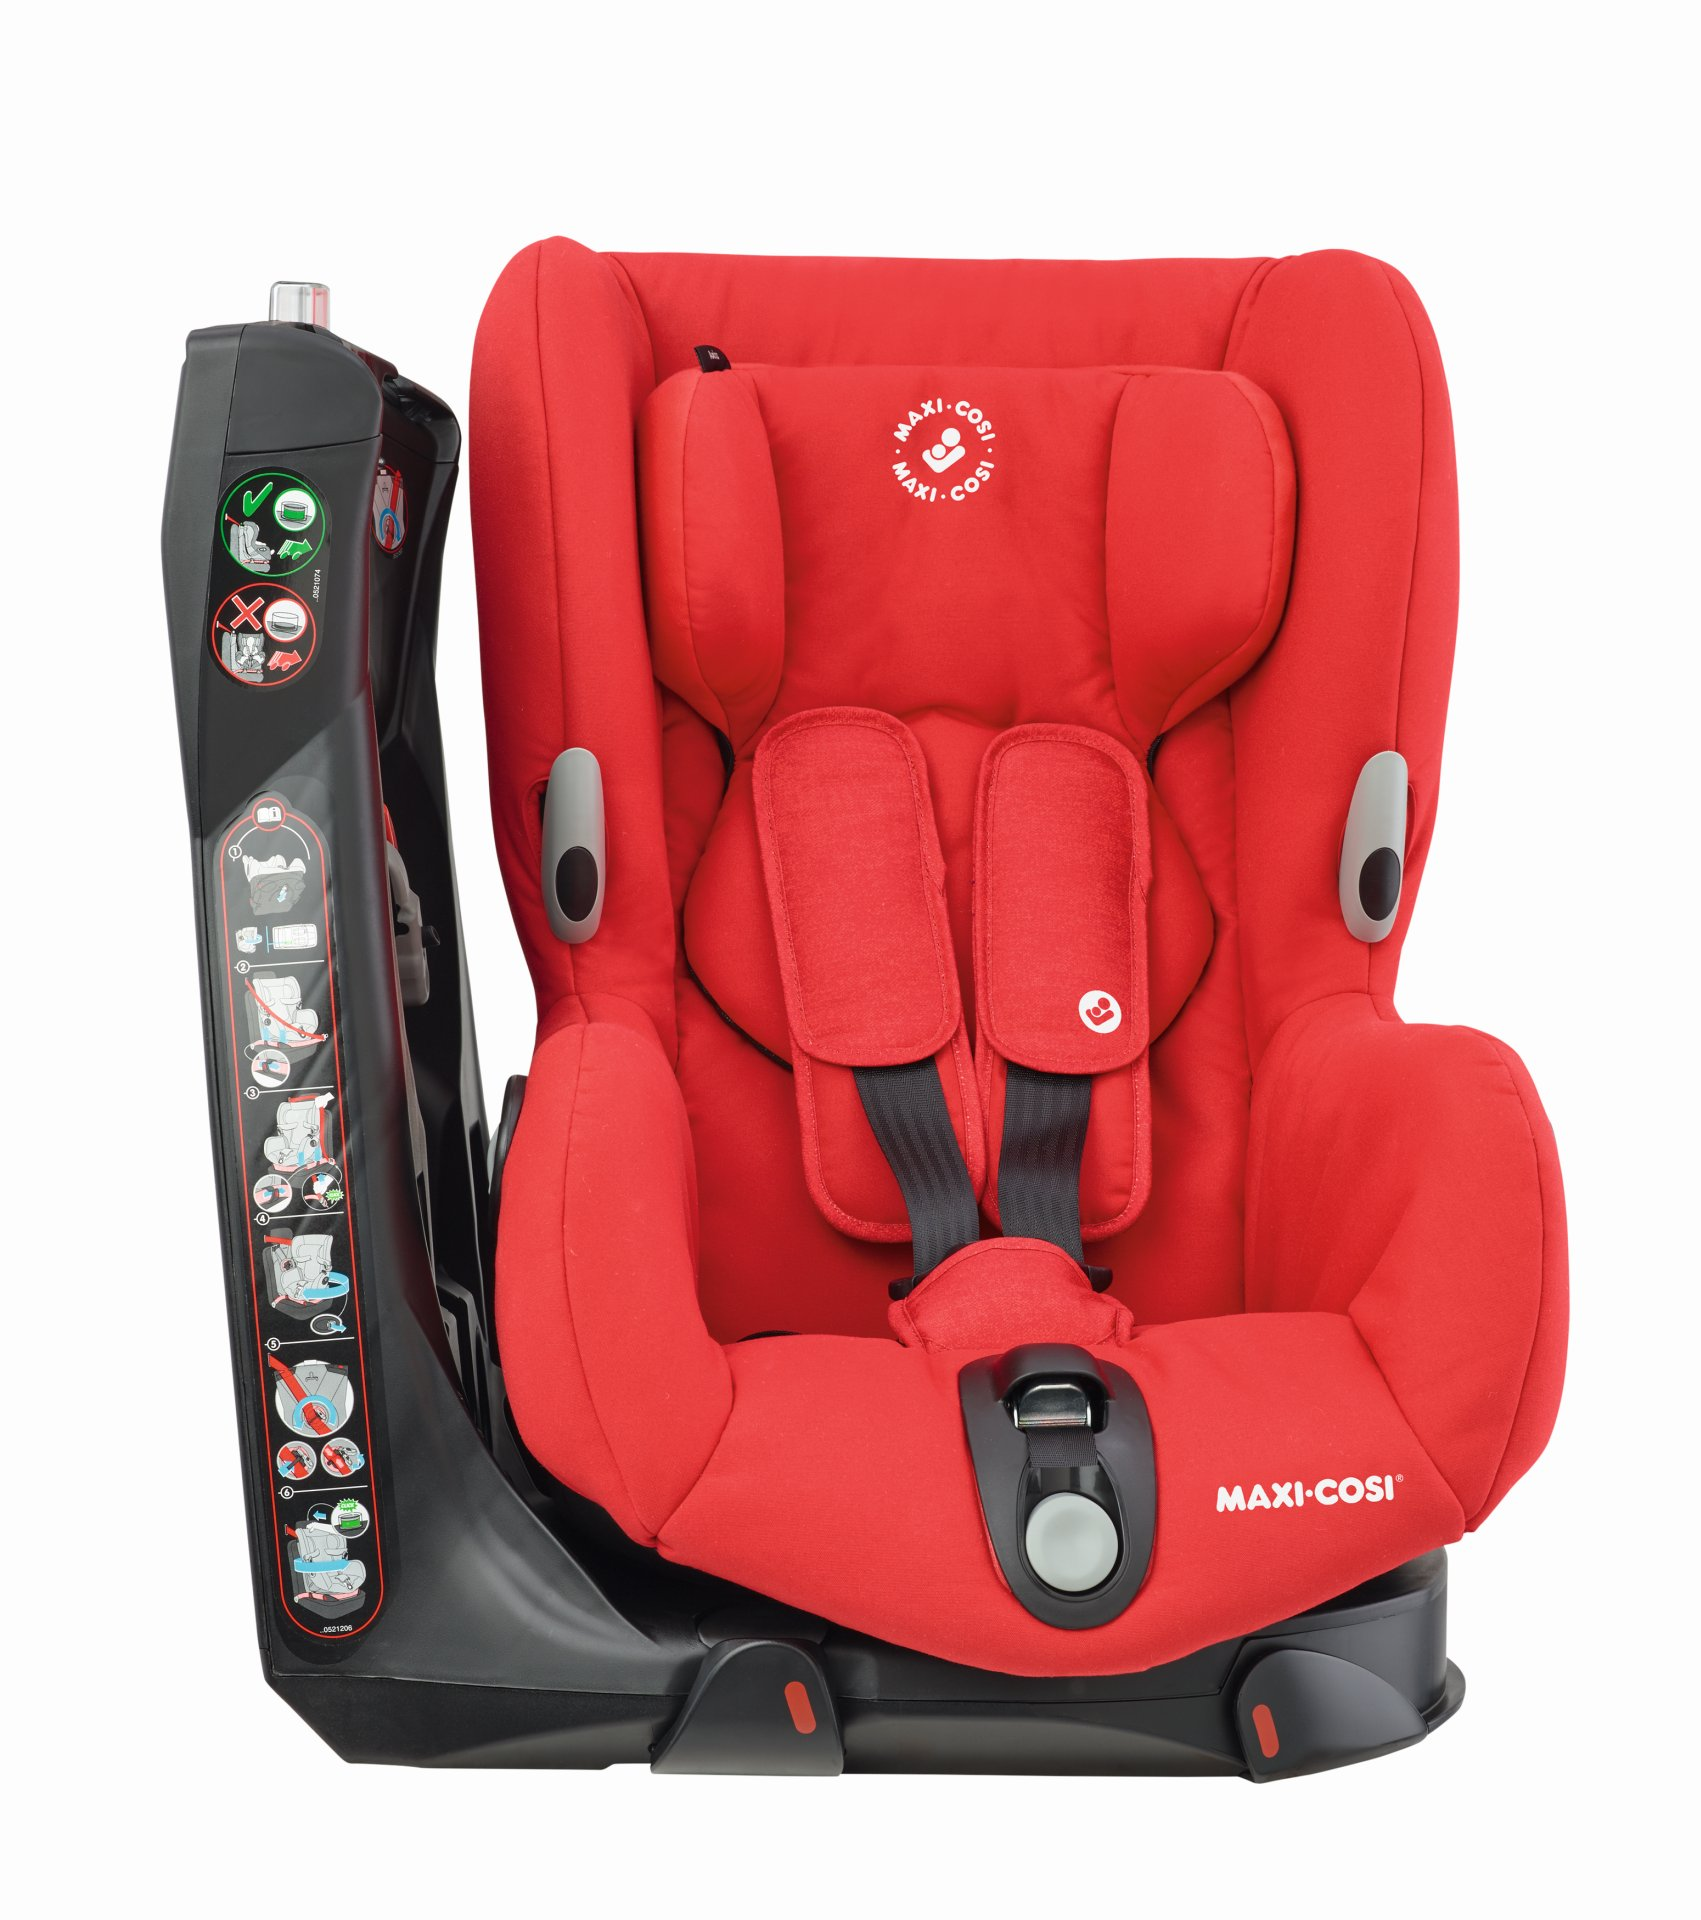 maxi cosi child car seat axiss 2019 nomad red buy at kidsroom car seats. Black Bedroom Furniture Sets. Home Design Ideas